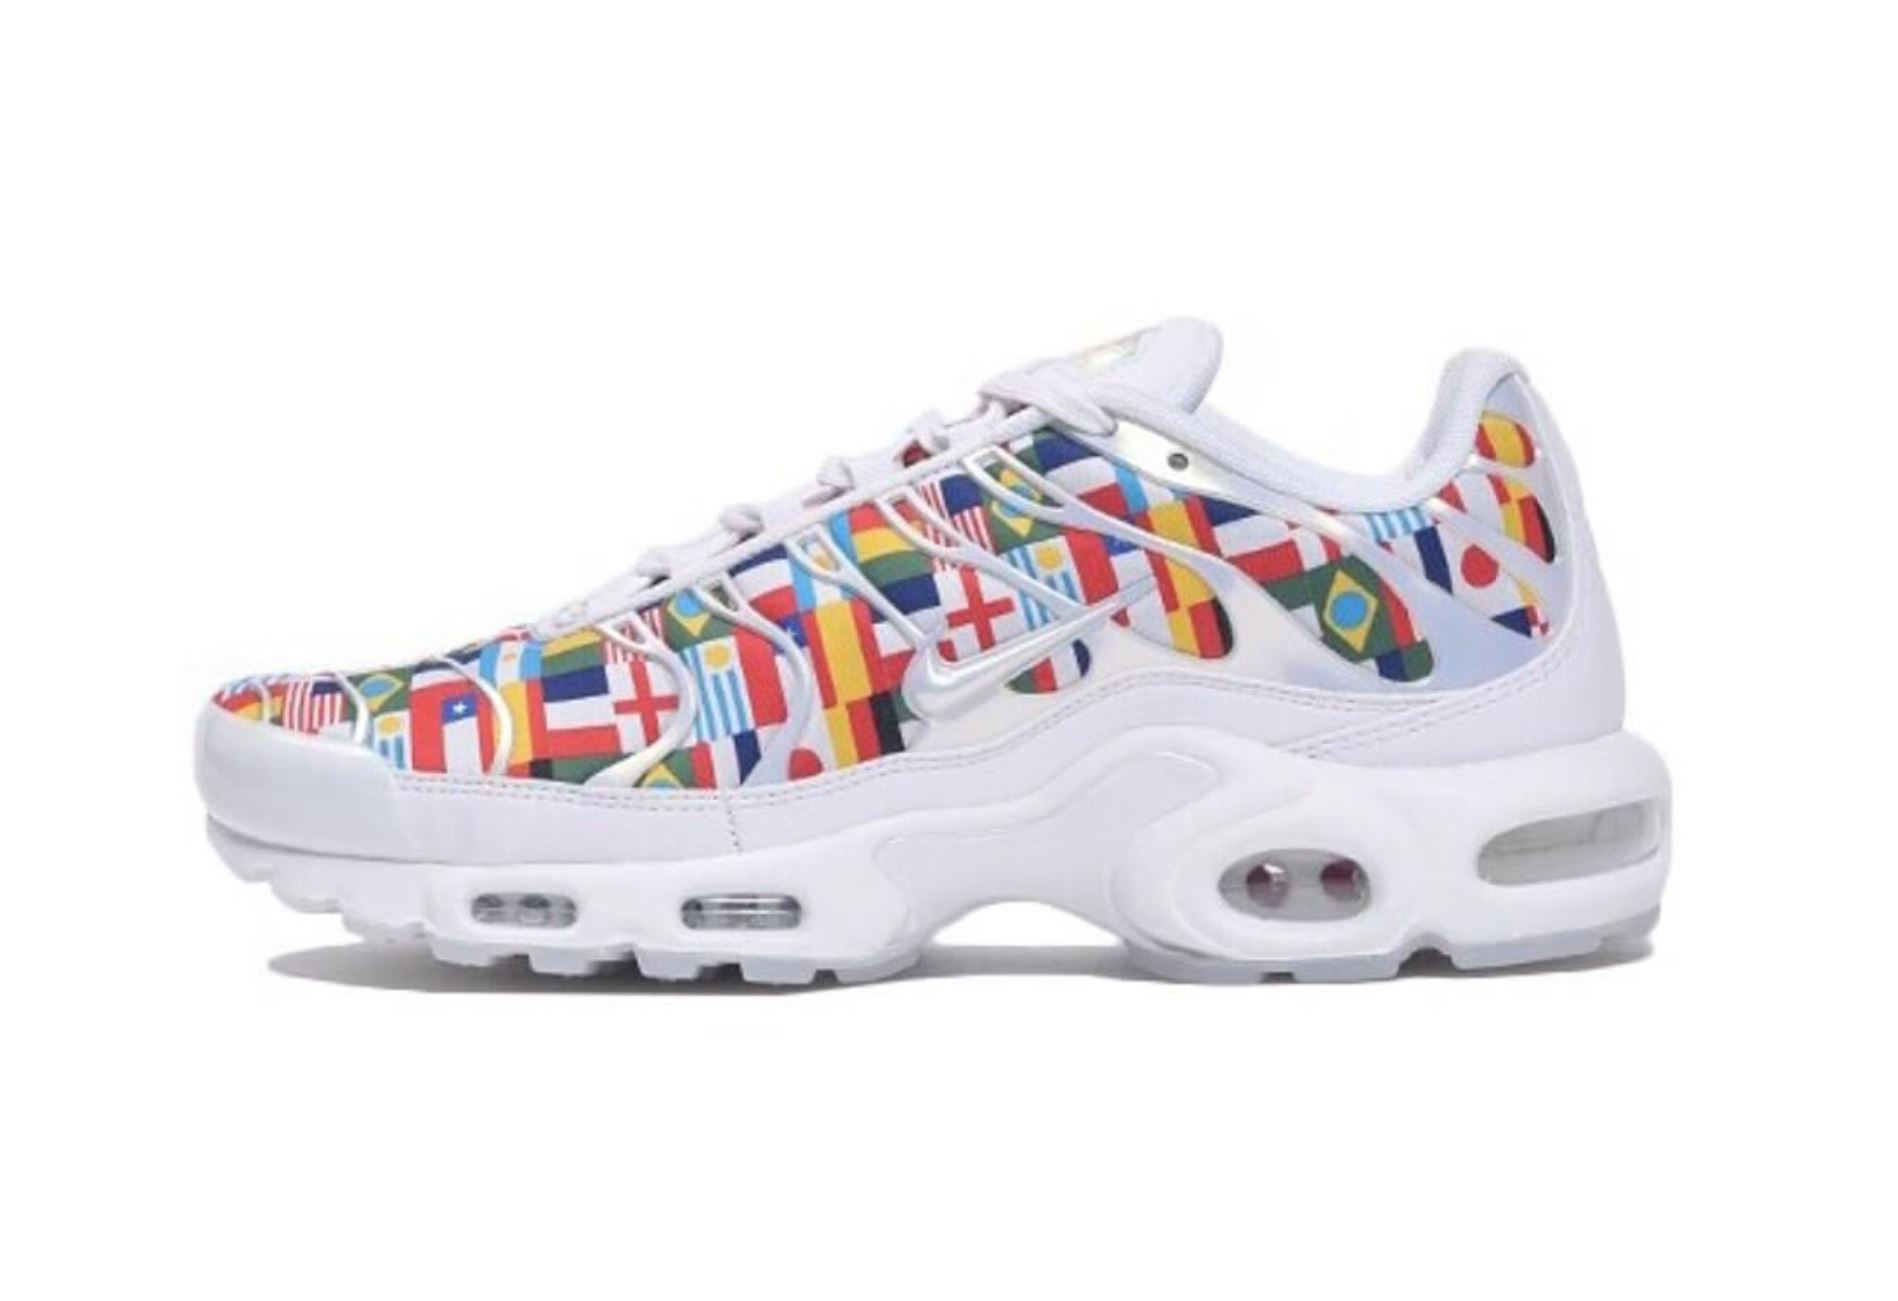 d25be9c11e6 air max plus Archives - WearTesters